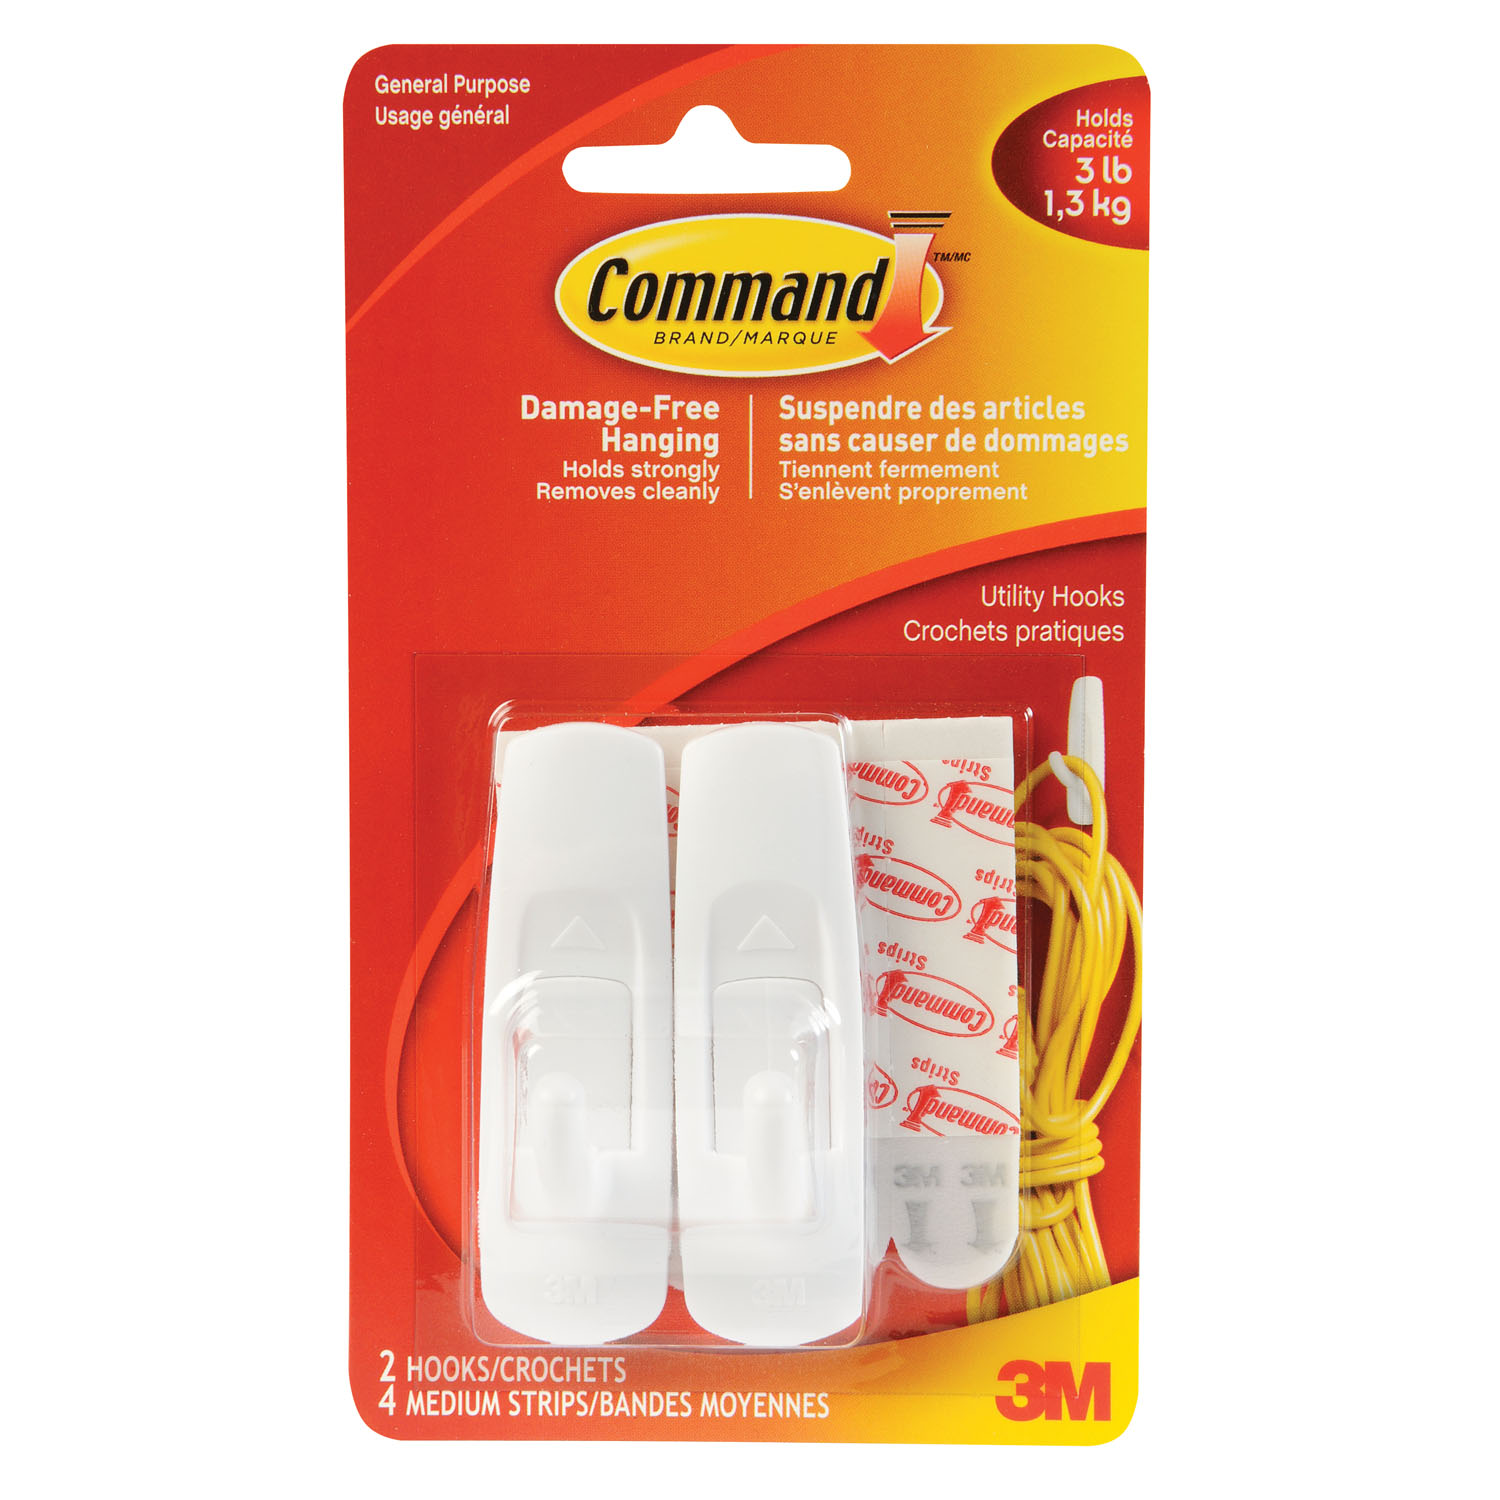 Command Adhesive Utility Hooks, Medium, Holds Up To 3 Lbs